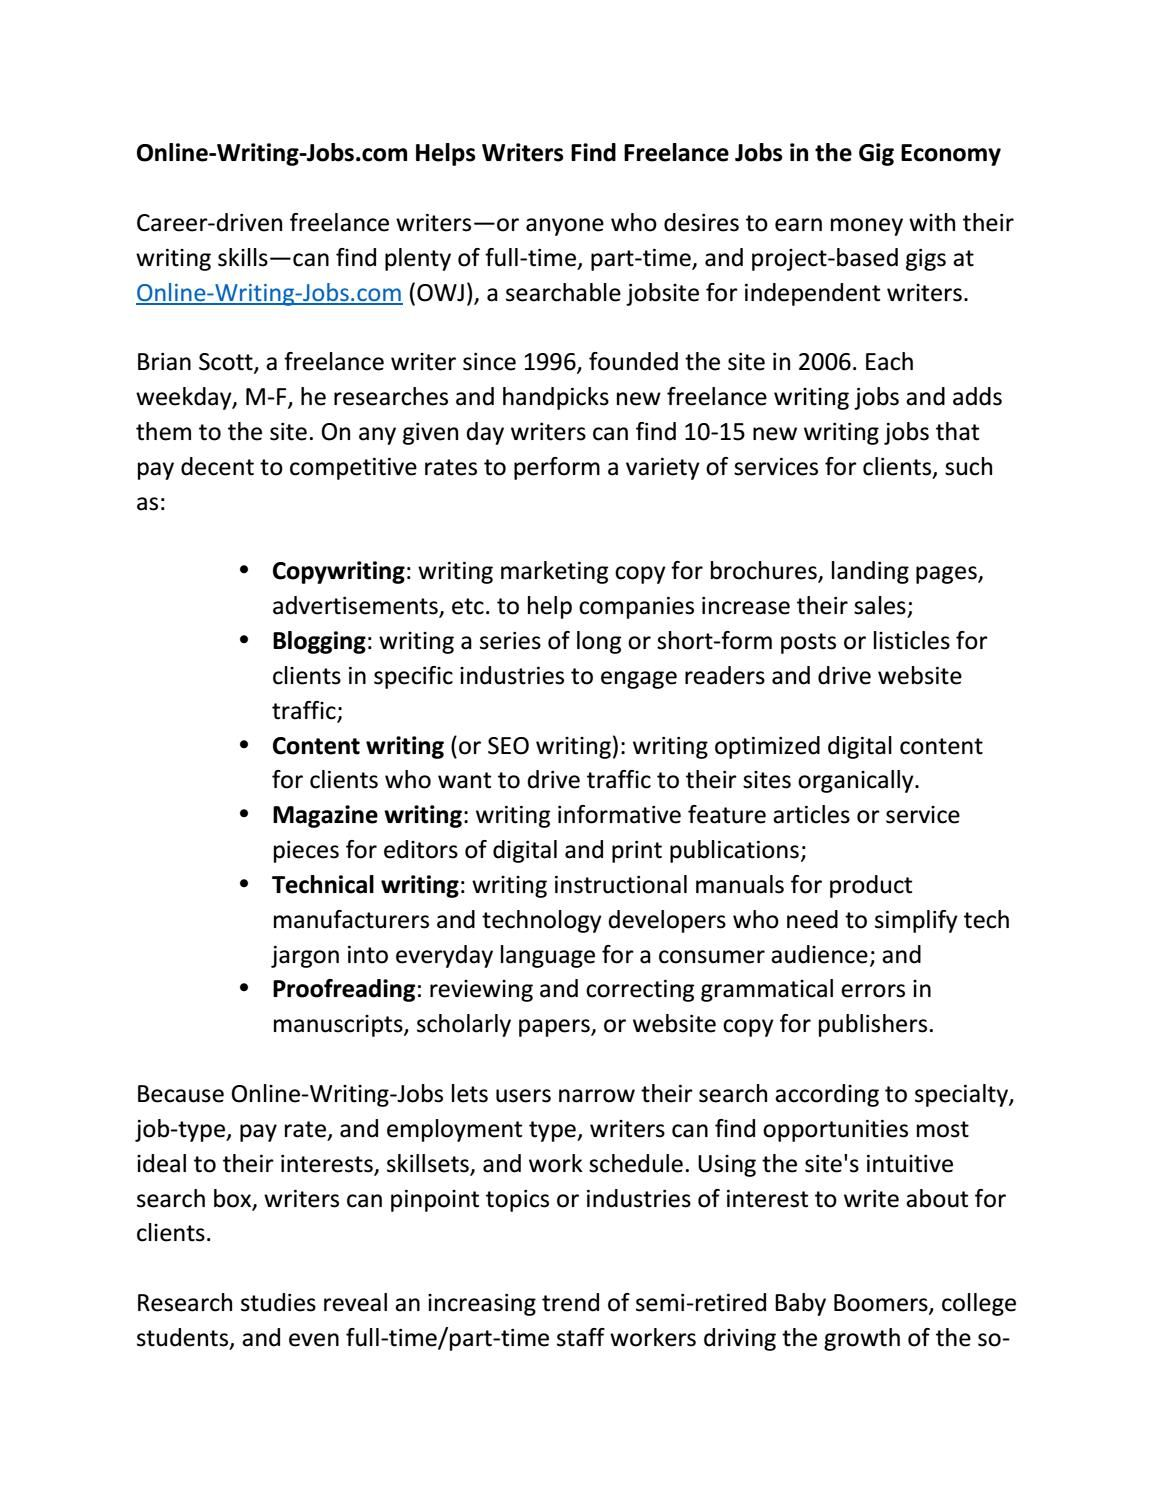 online writing jobs com helps writers lance jobs in the online writing jobs